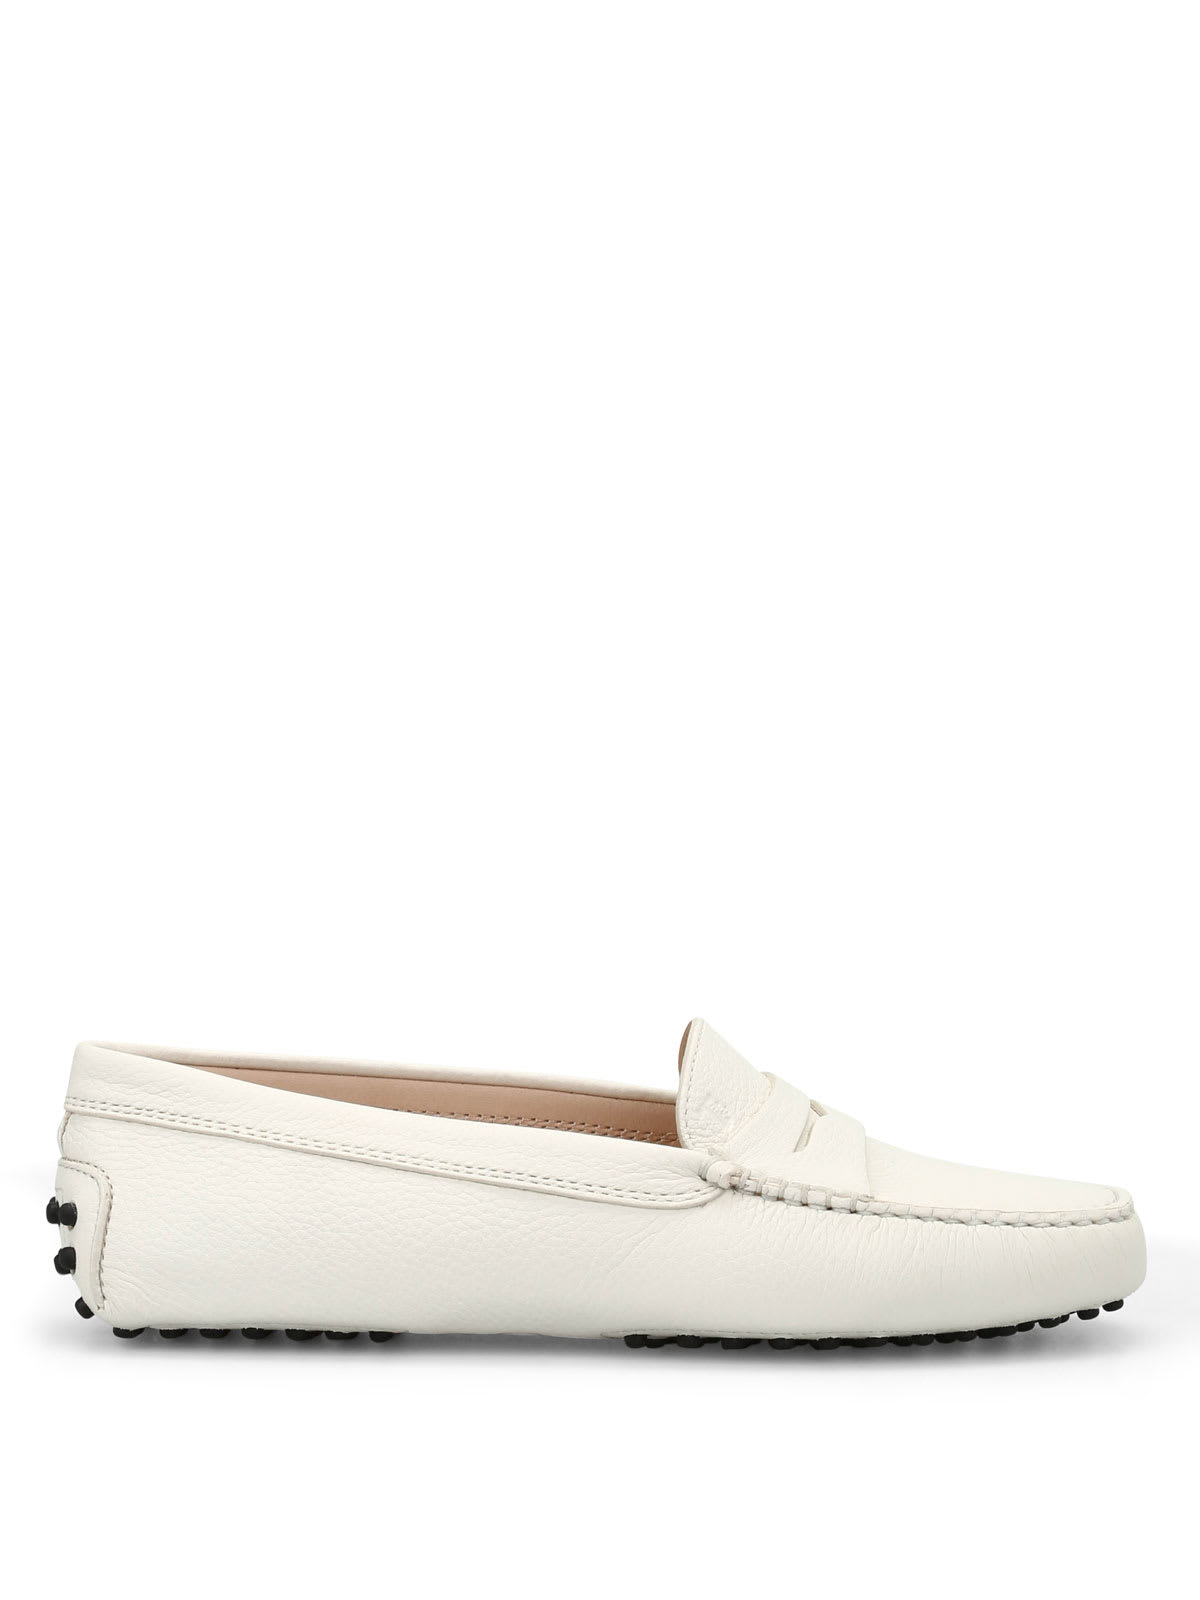 Tods Flat Shoes